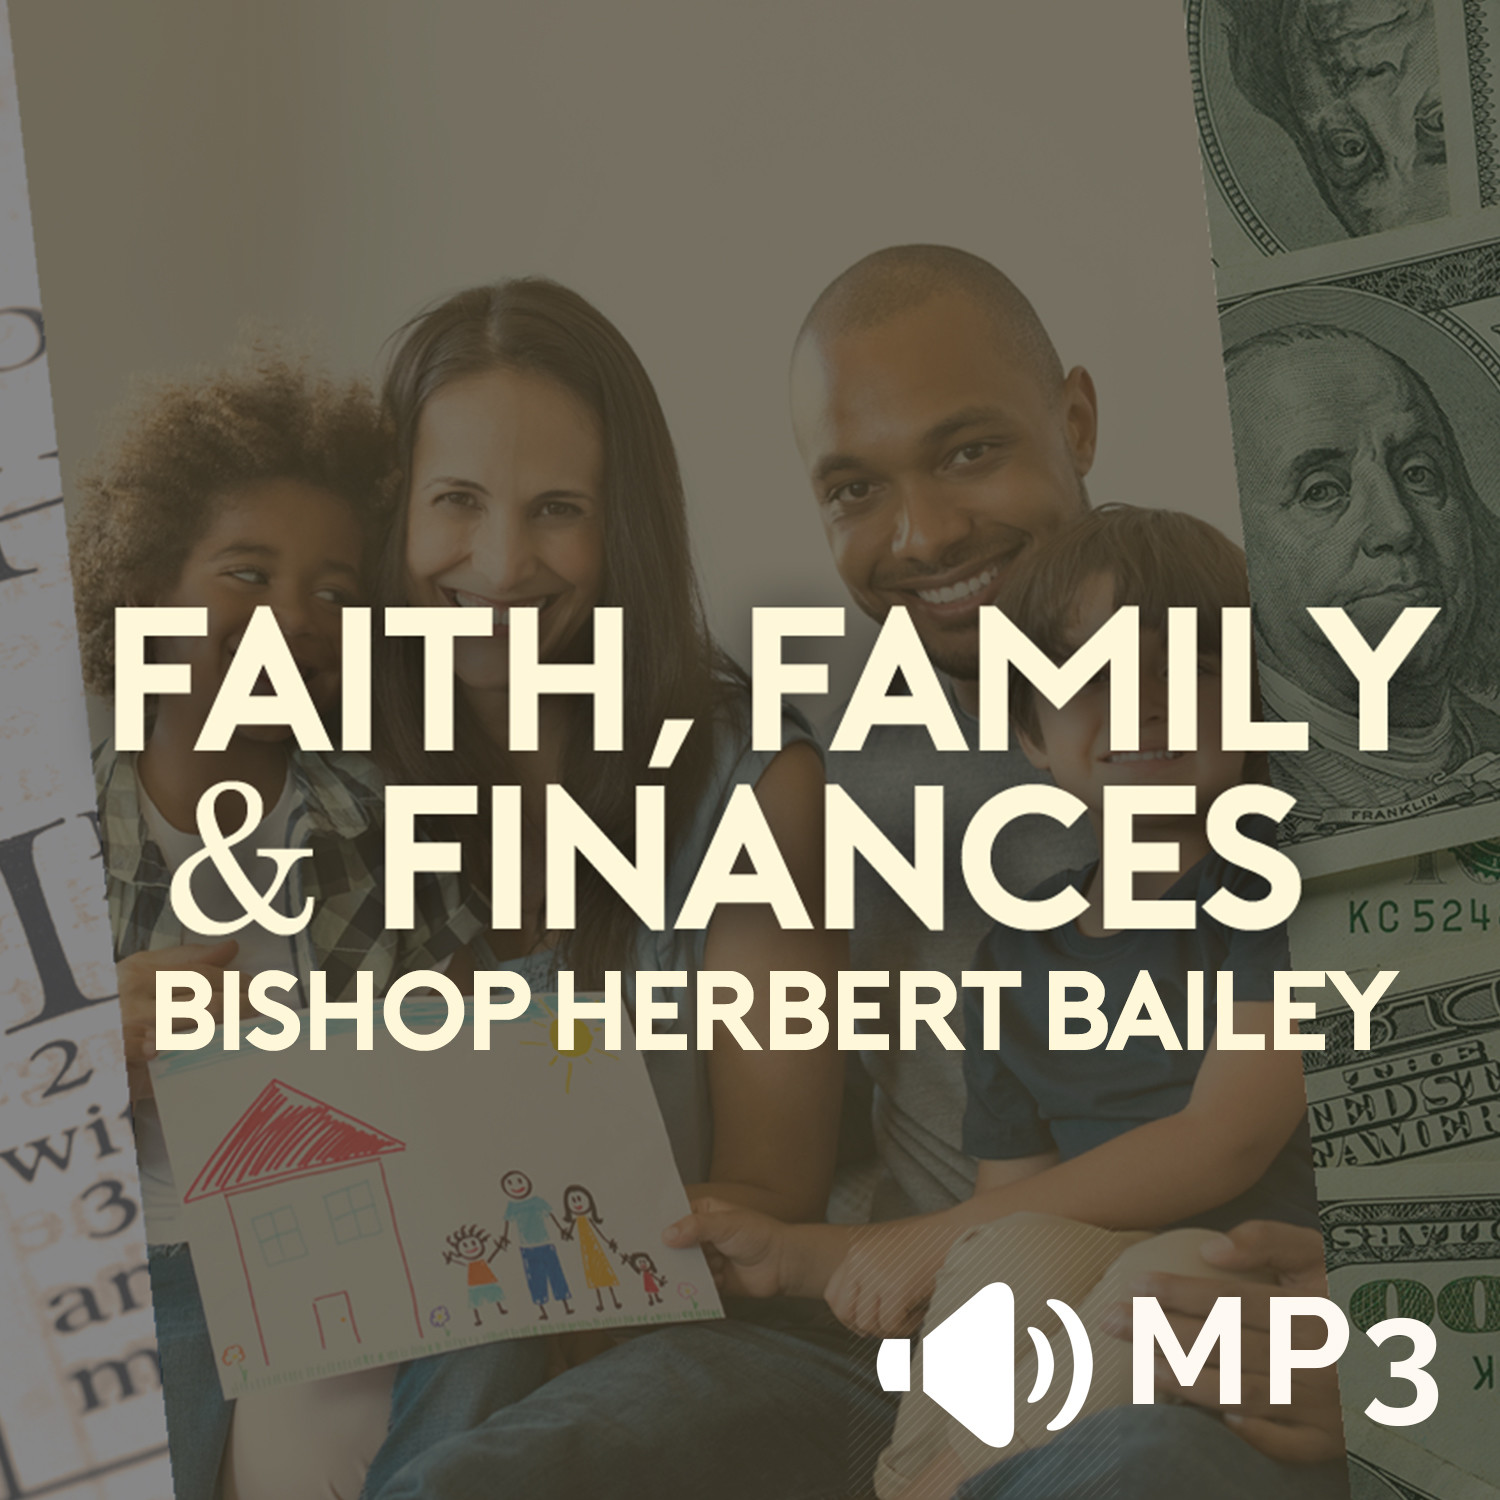 Faith Family and Finances, Preparing for Your Children's Future